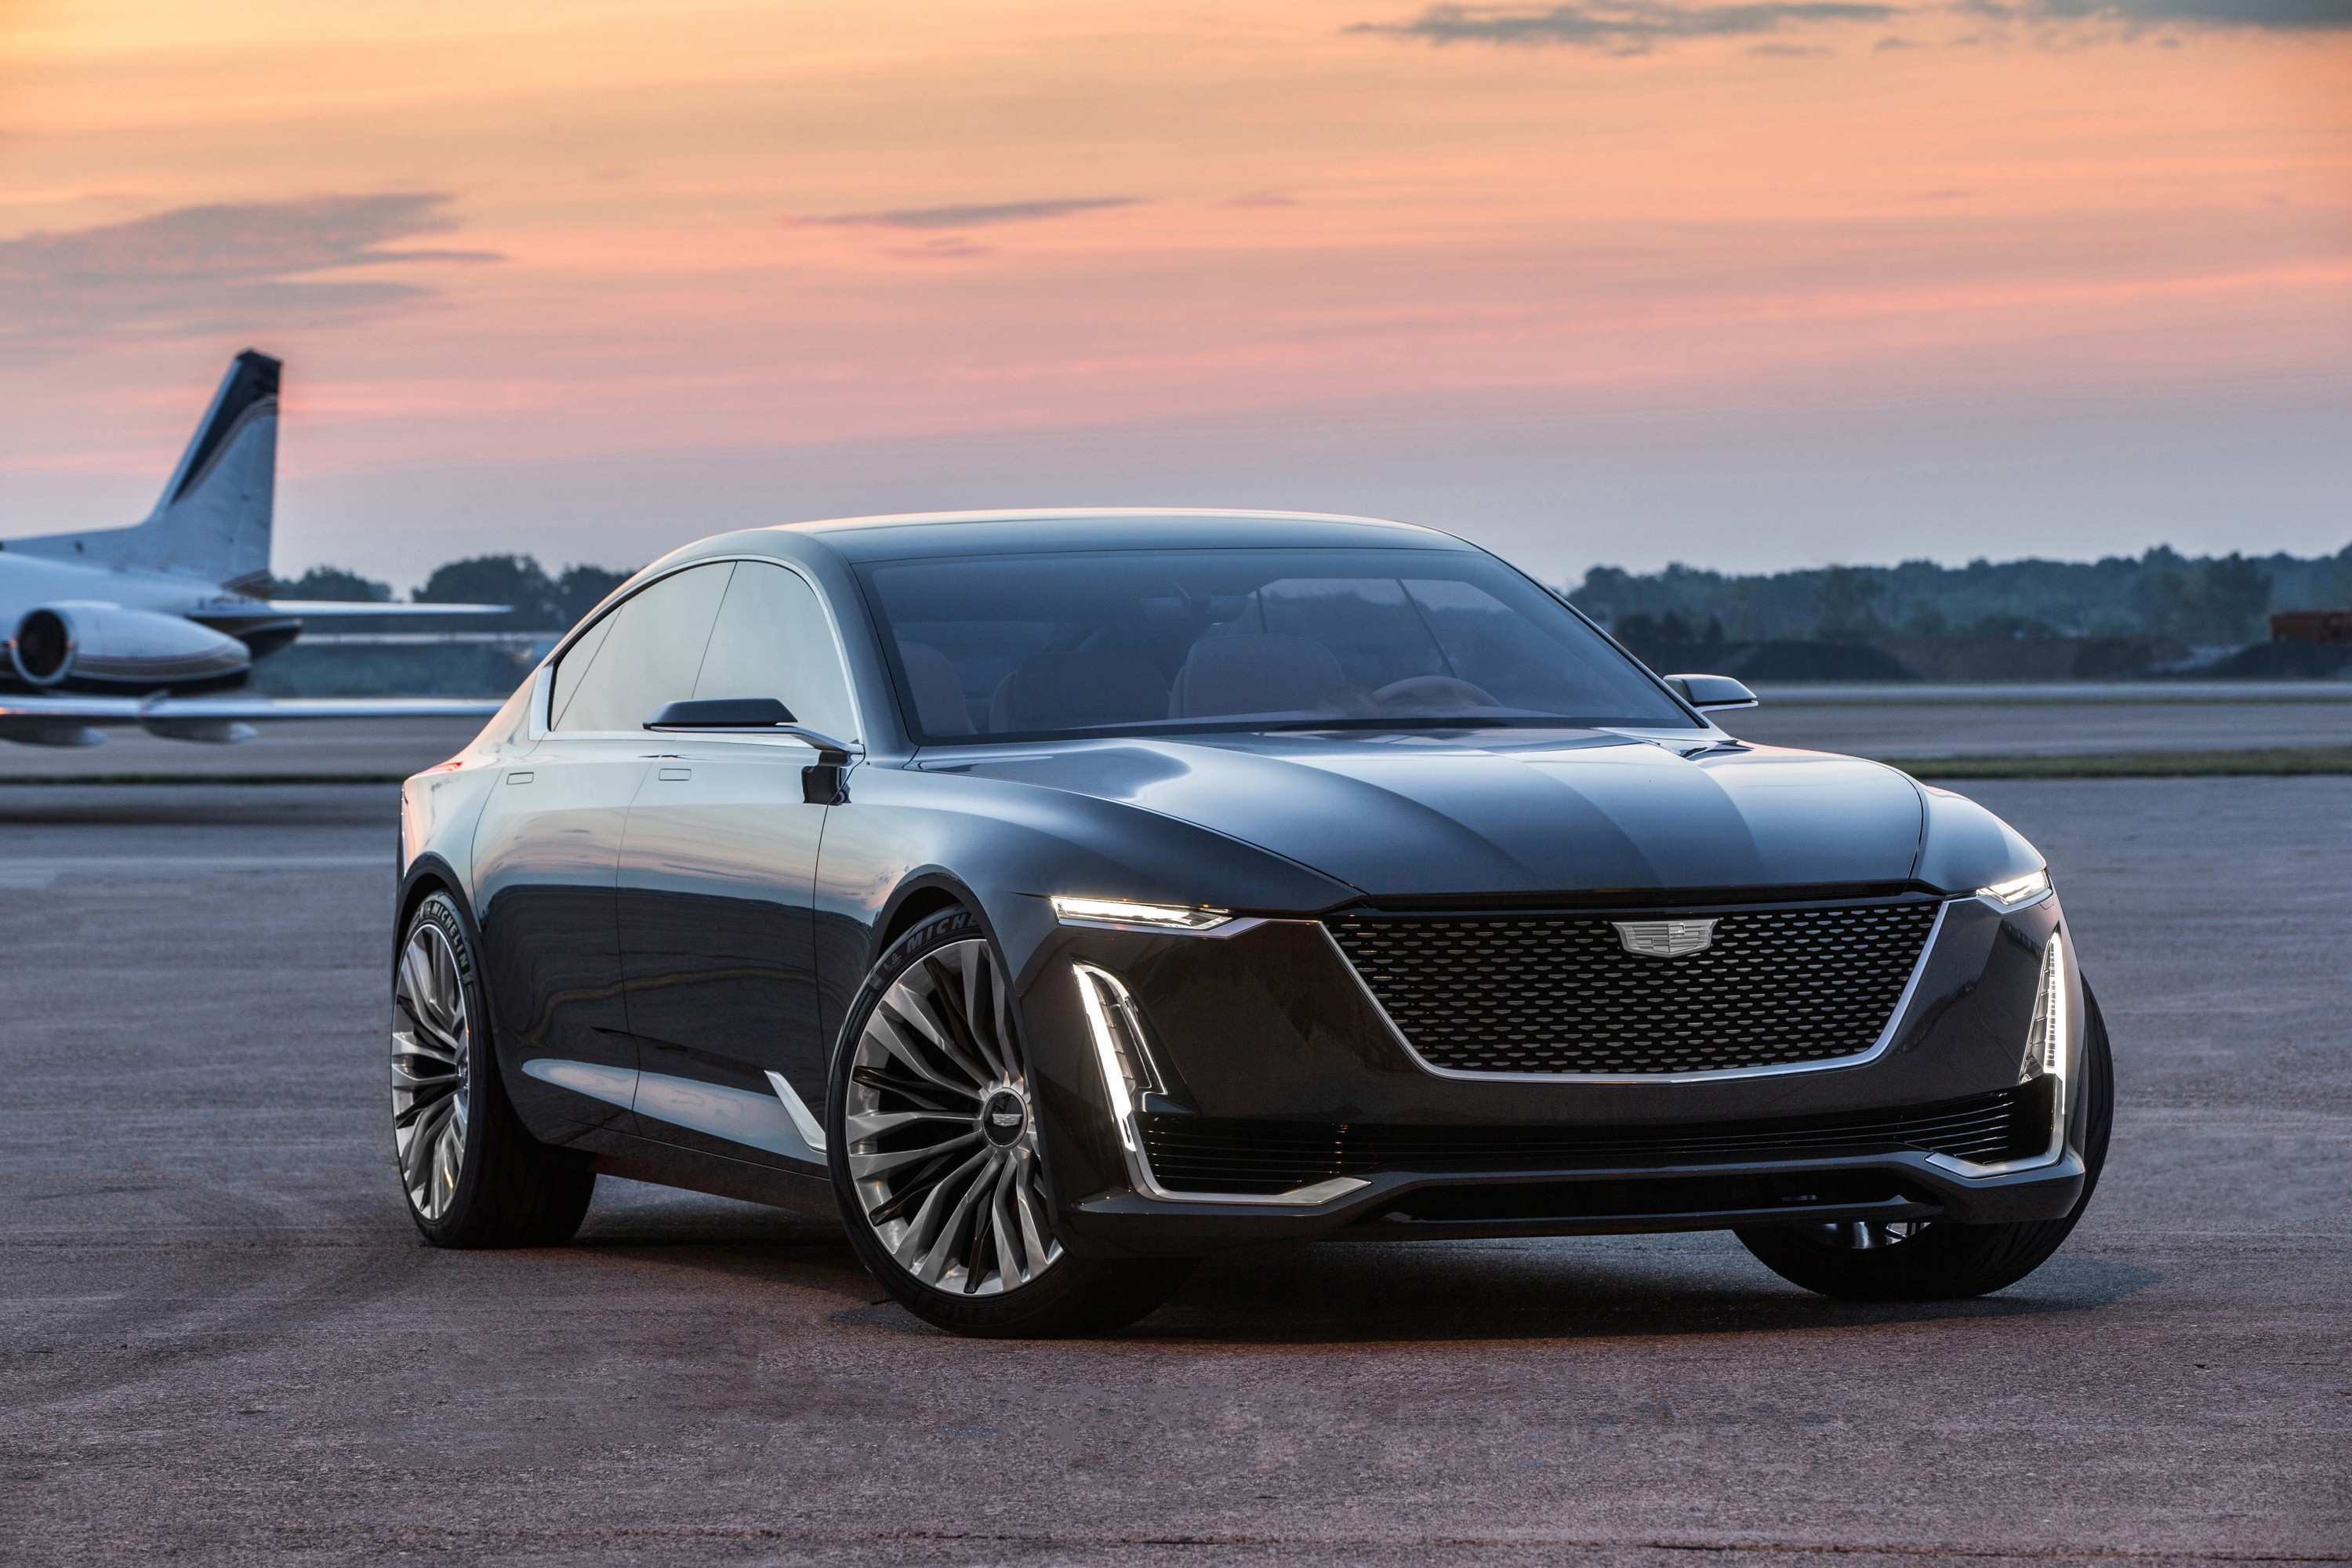 94 Best Review 2020 Cadillac Lineup Spy Shoot for 2020 Cadillac Lineup